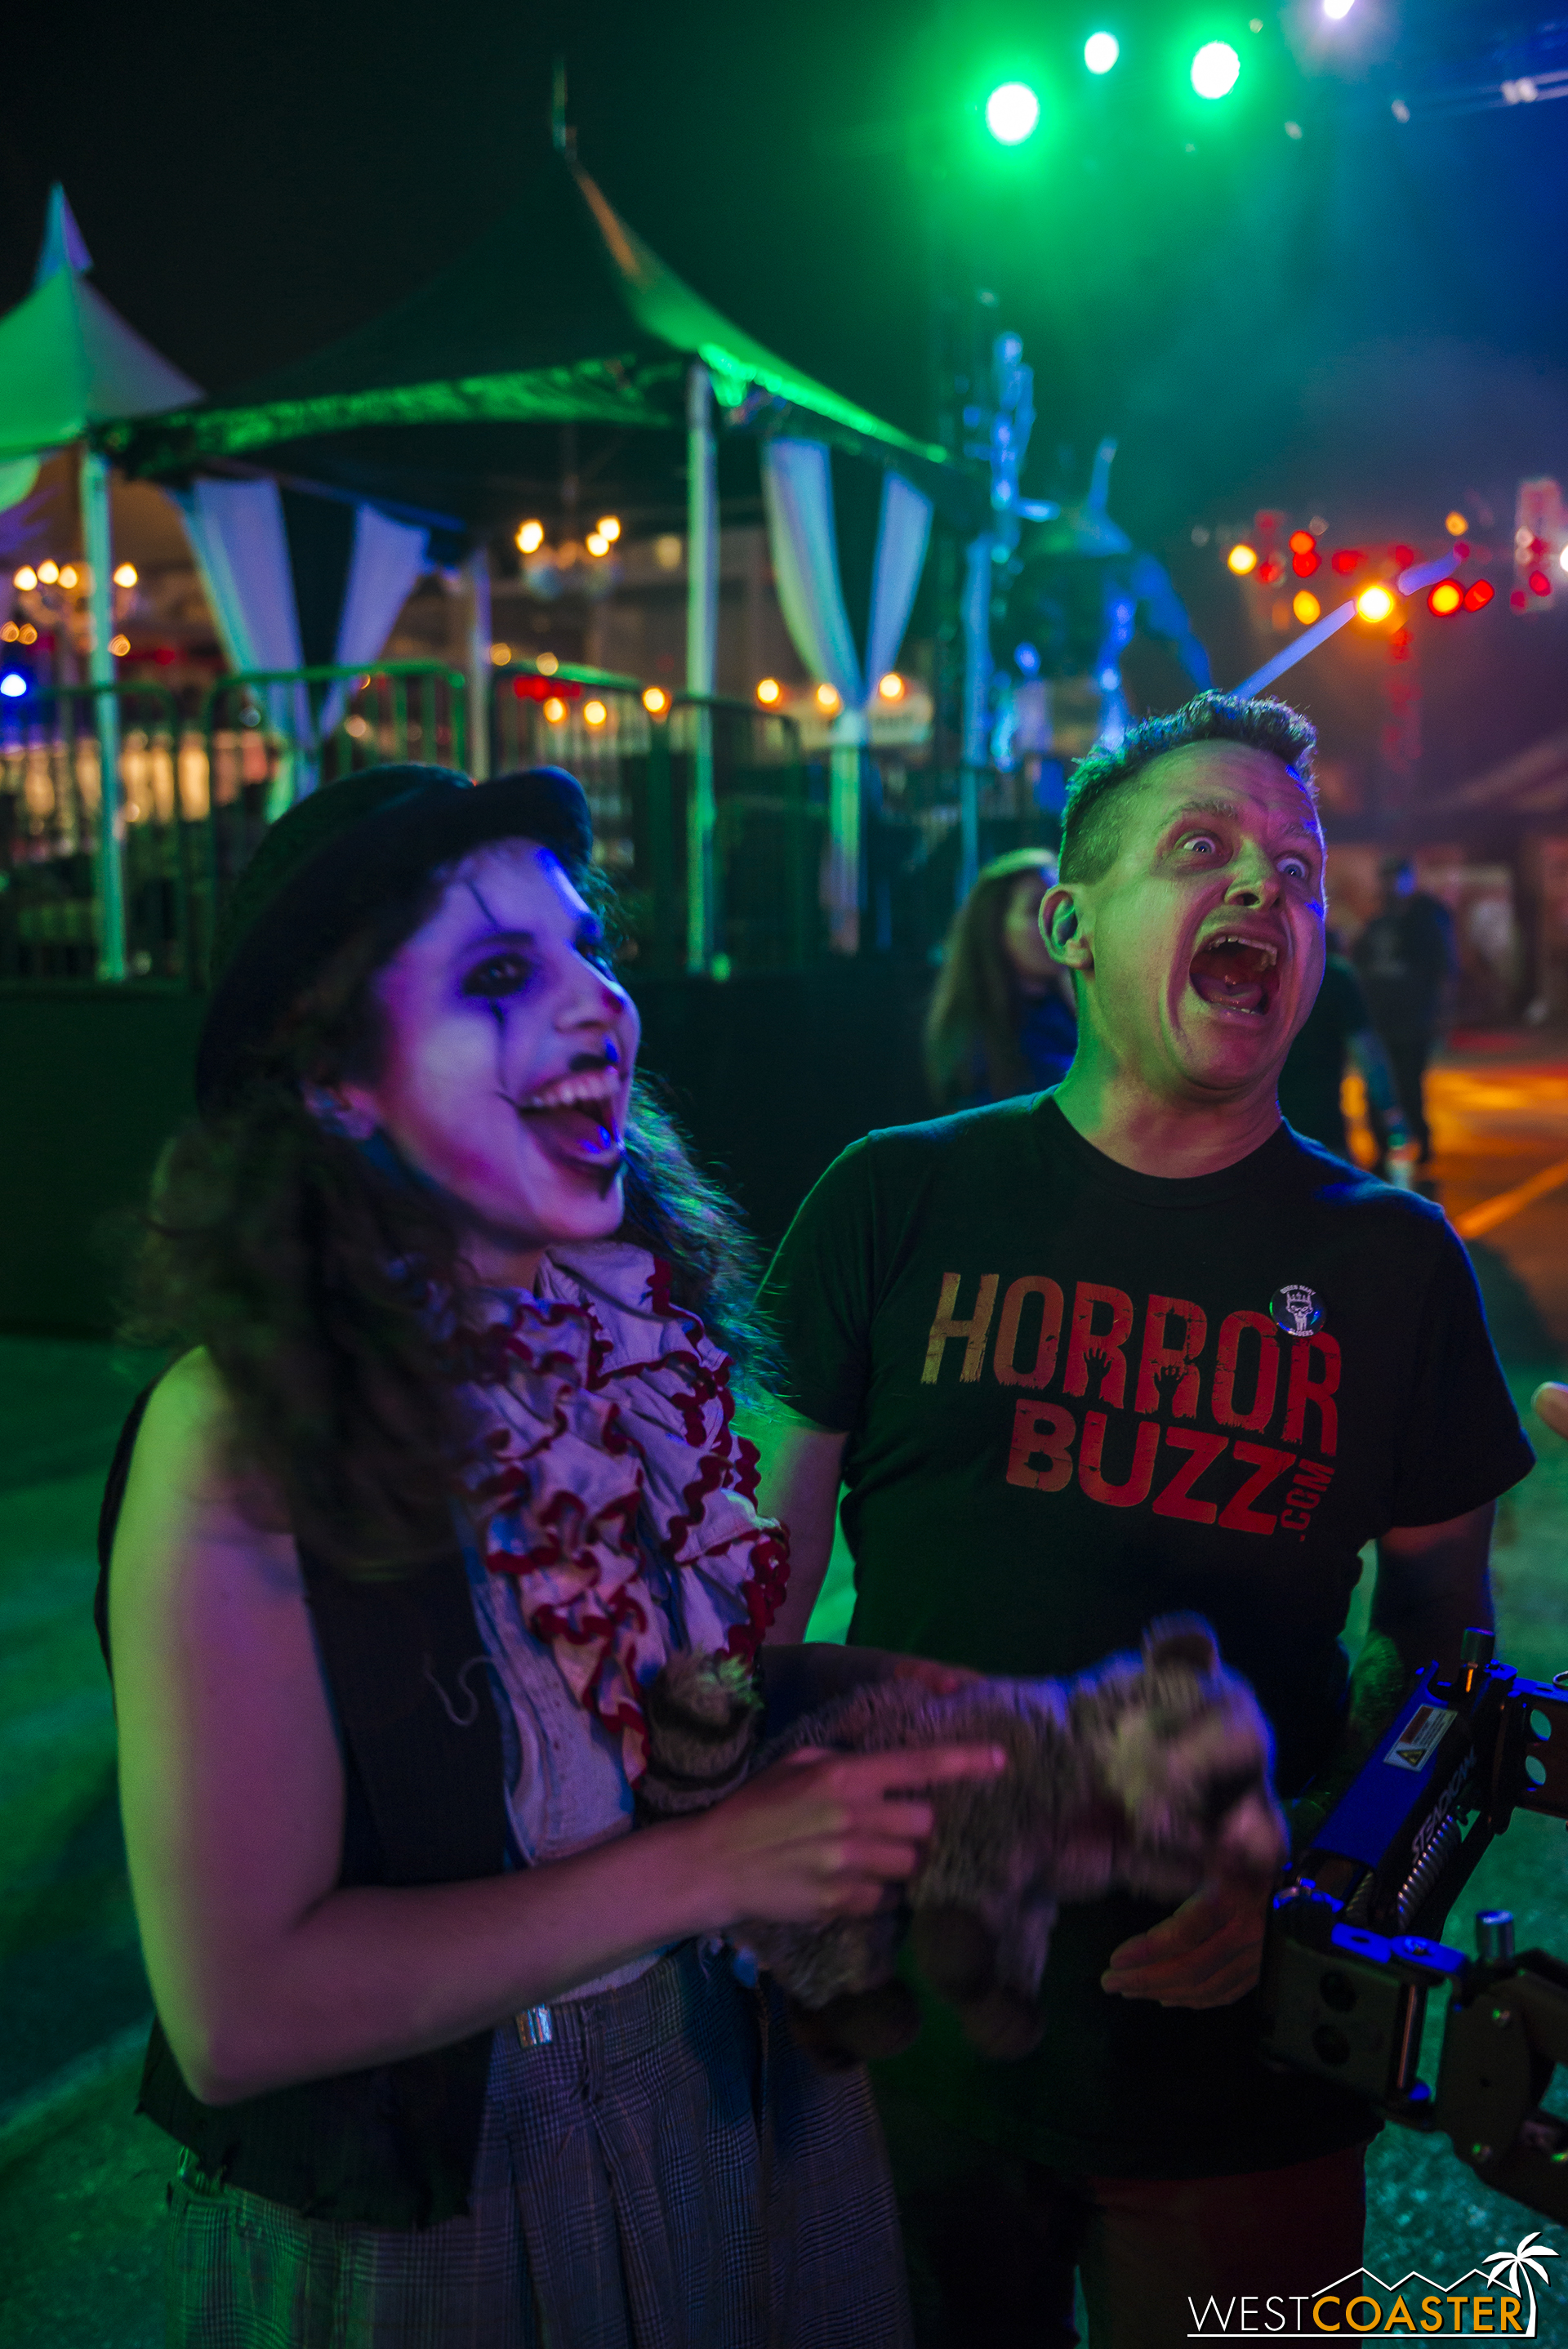 Norm from Horror Buzz agrees, Dark Harbor is a scream!